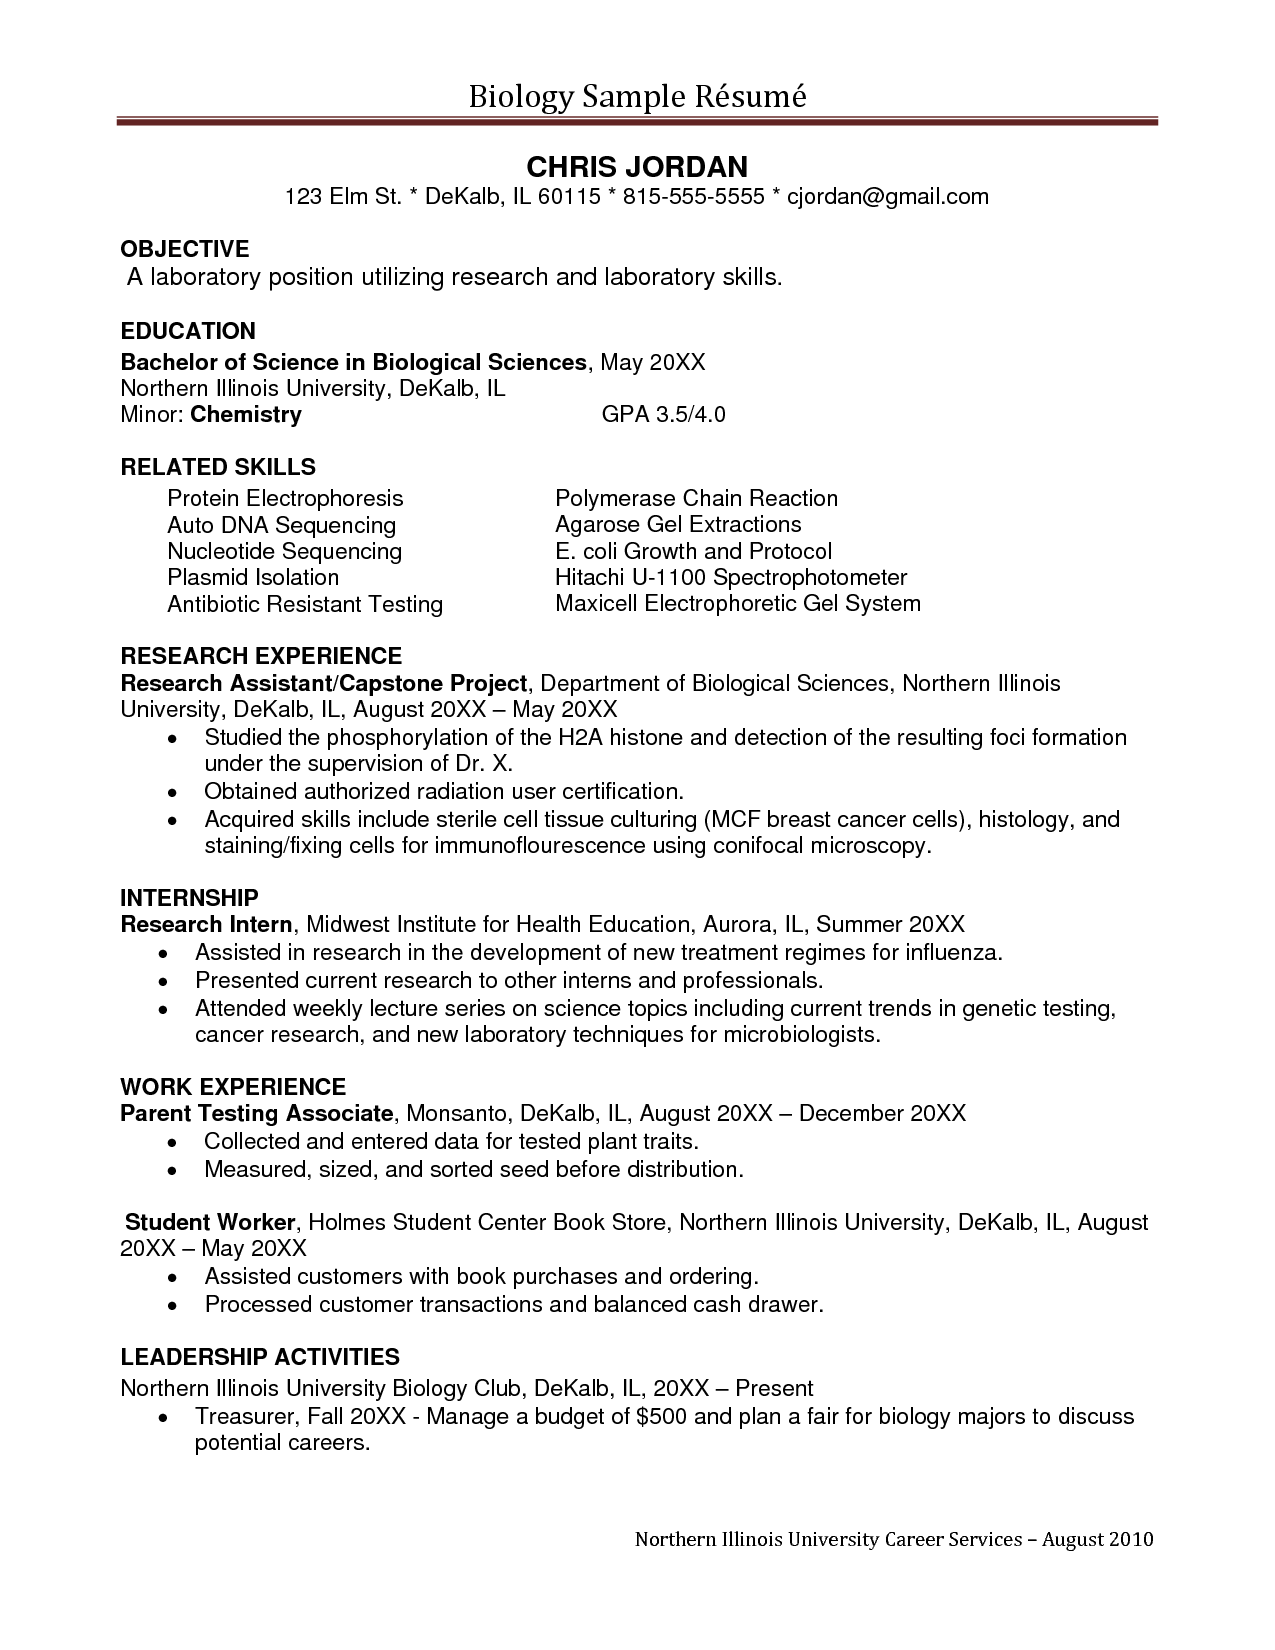 Research Assistant Resume Sample Objective Research Assistant